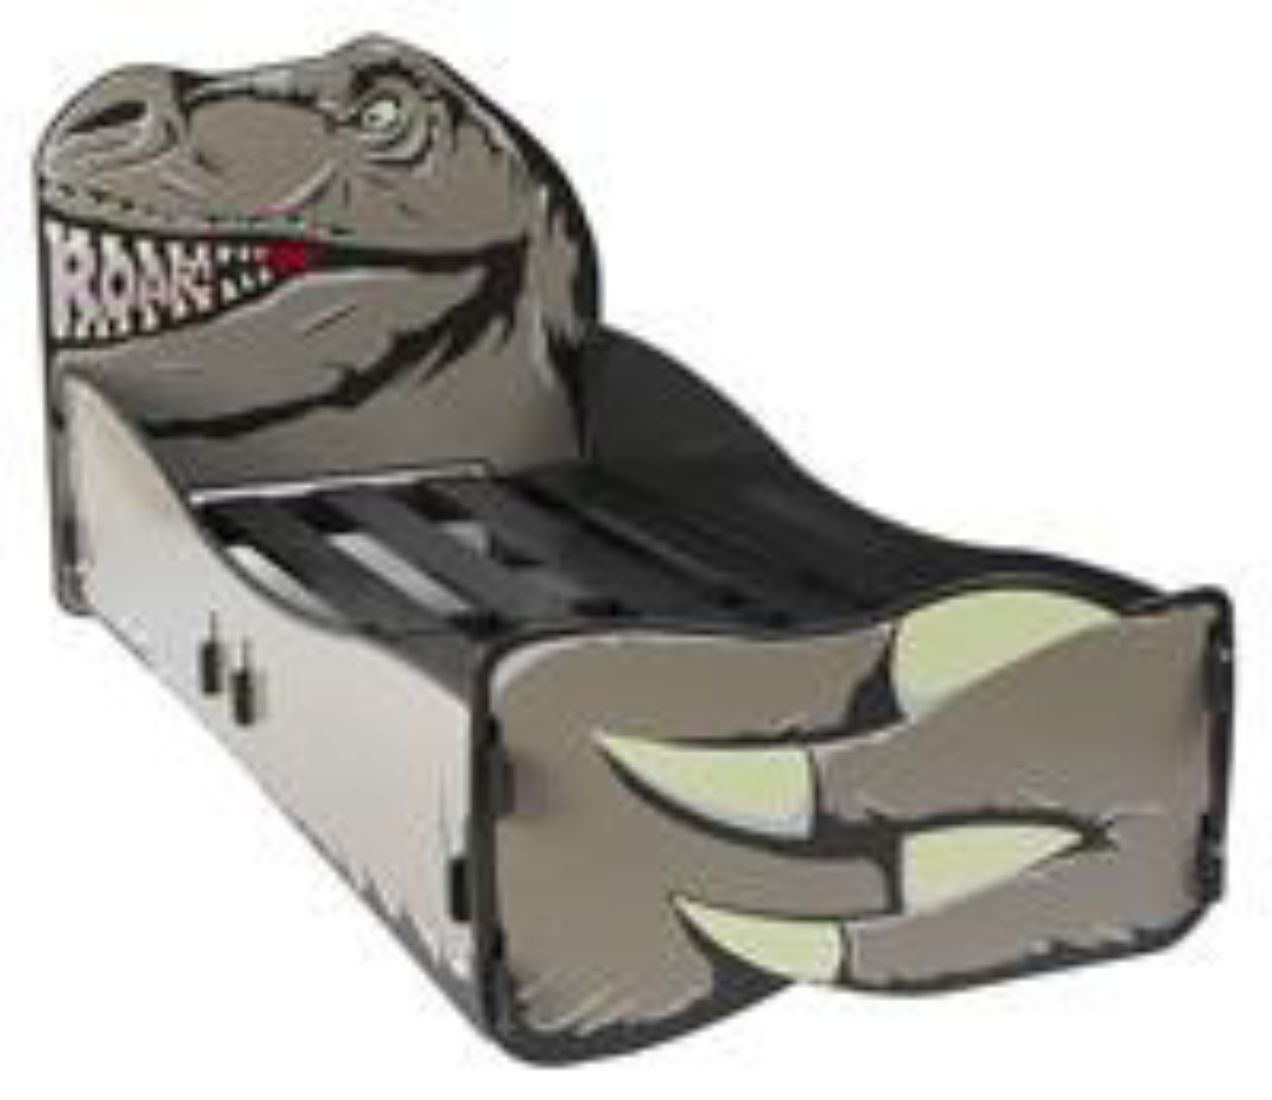 Mattress To Fit Dino Bed Mattress Size Is 3 190 X 90 Cm